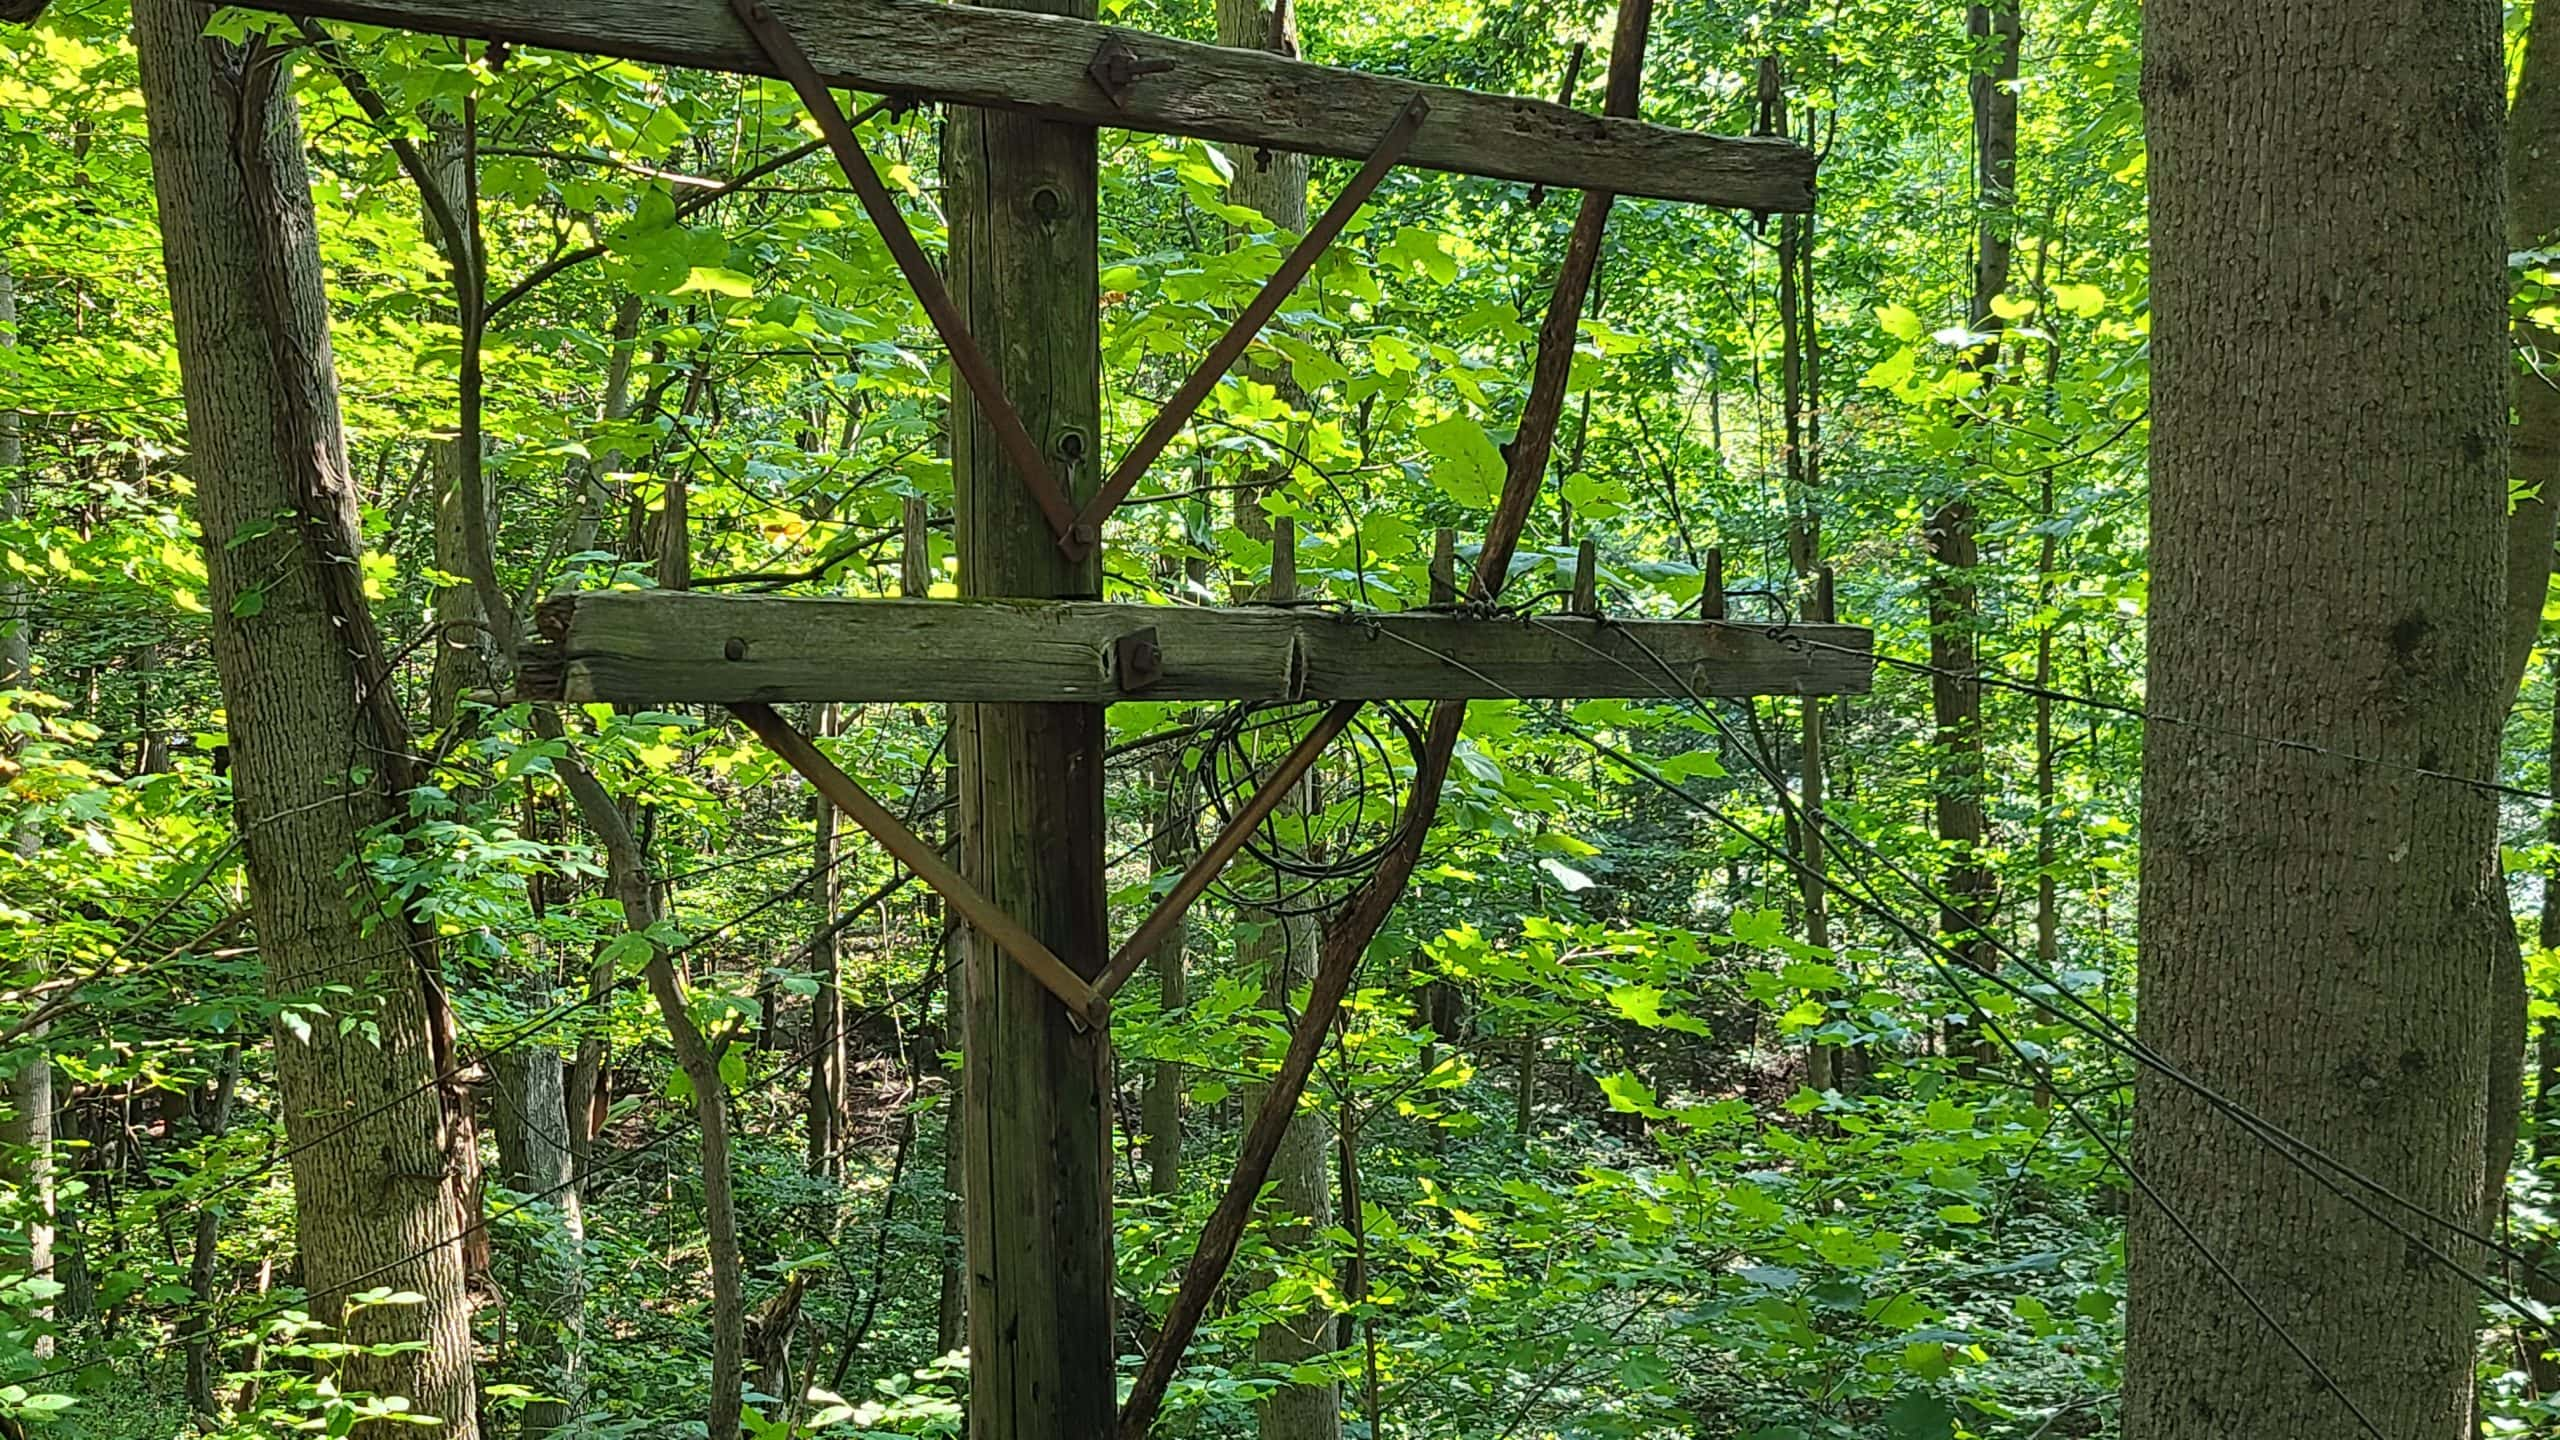 A telegraph pole in the woods. Cables are still attached. One of the posts is broken.